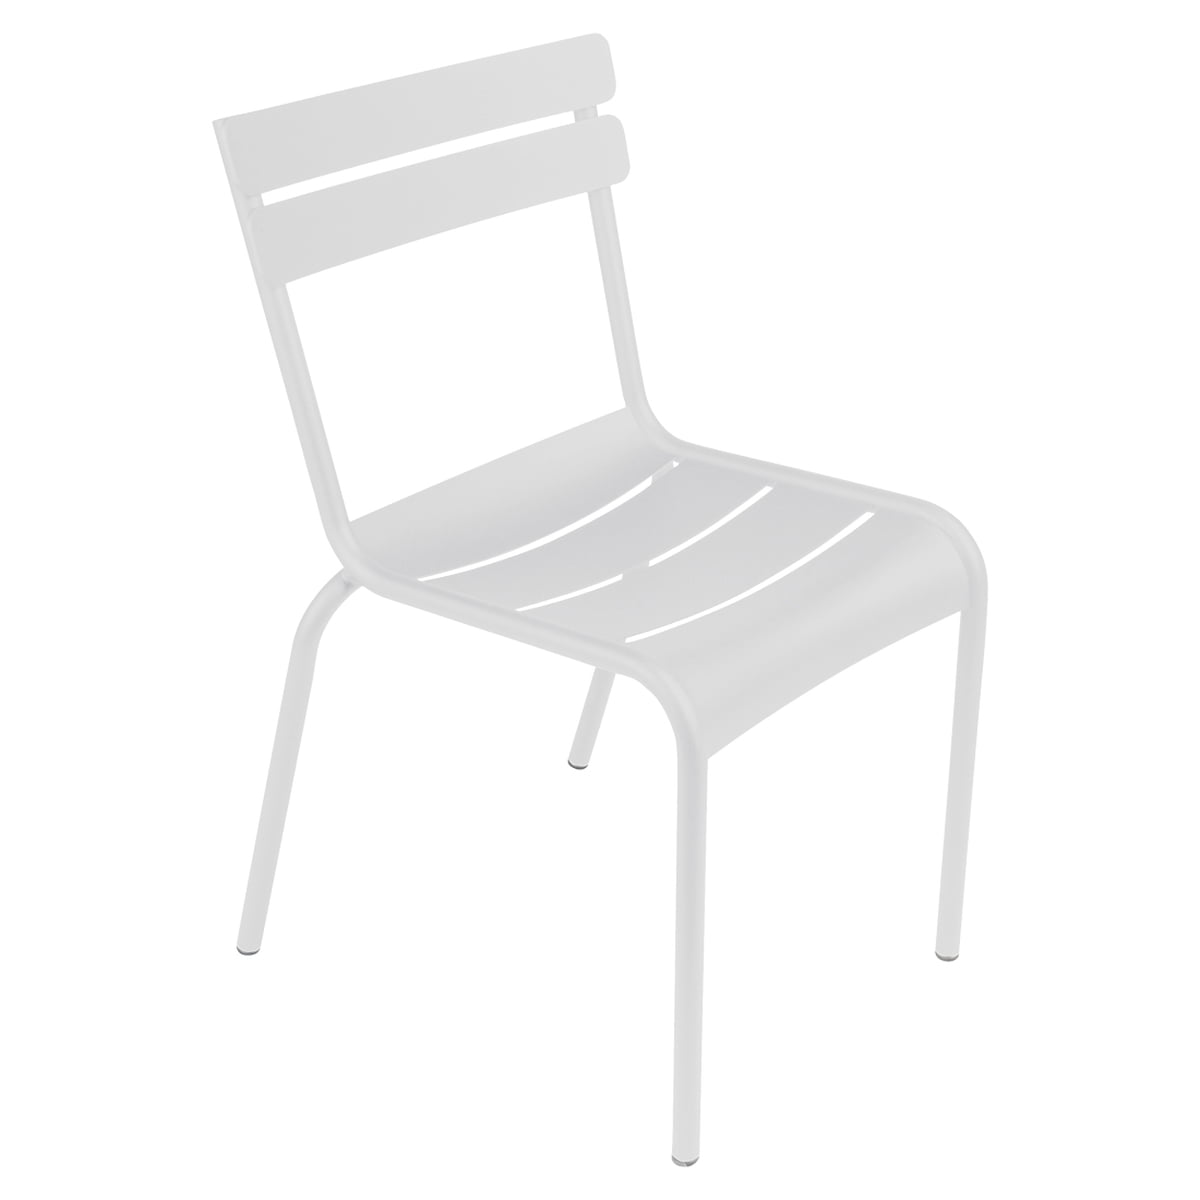 Fermob - Luxembourg Chair, cotto white